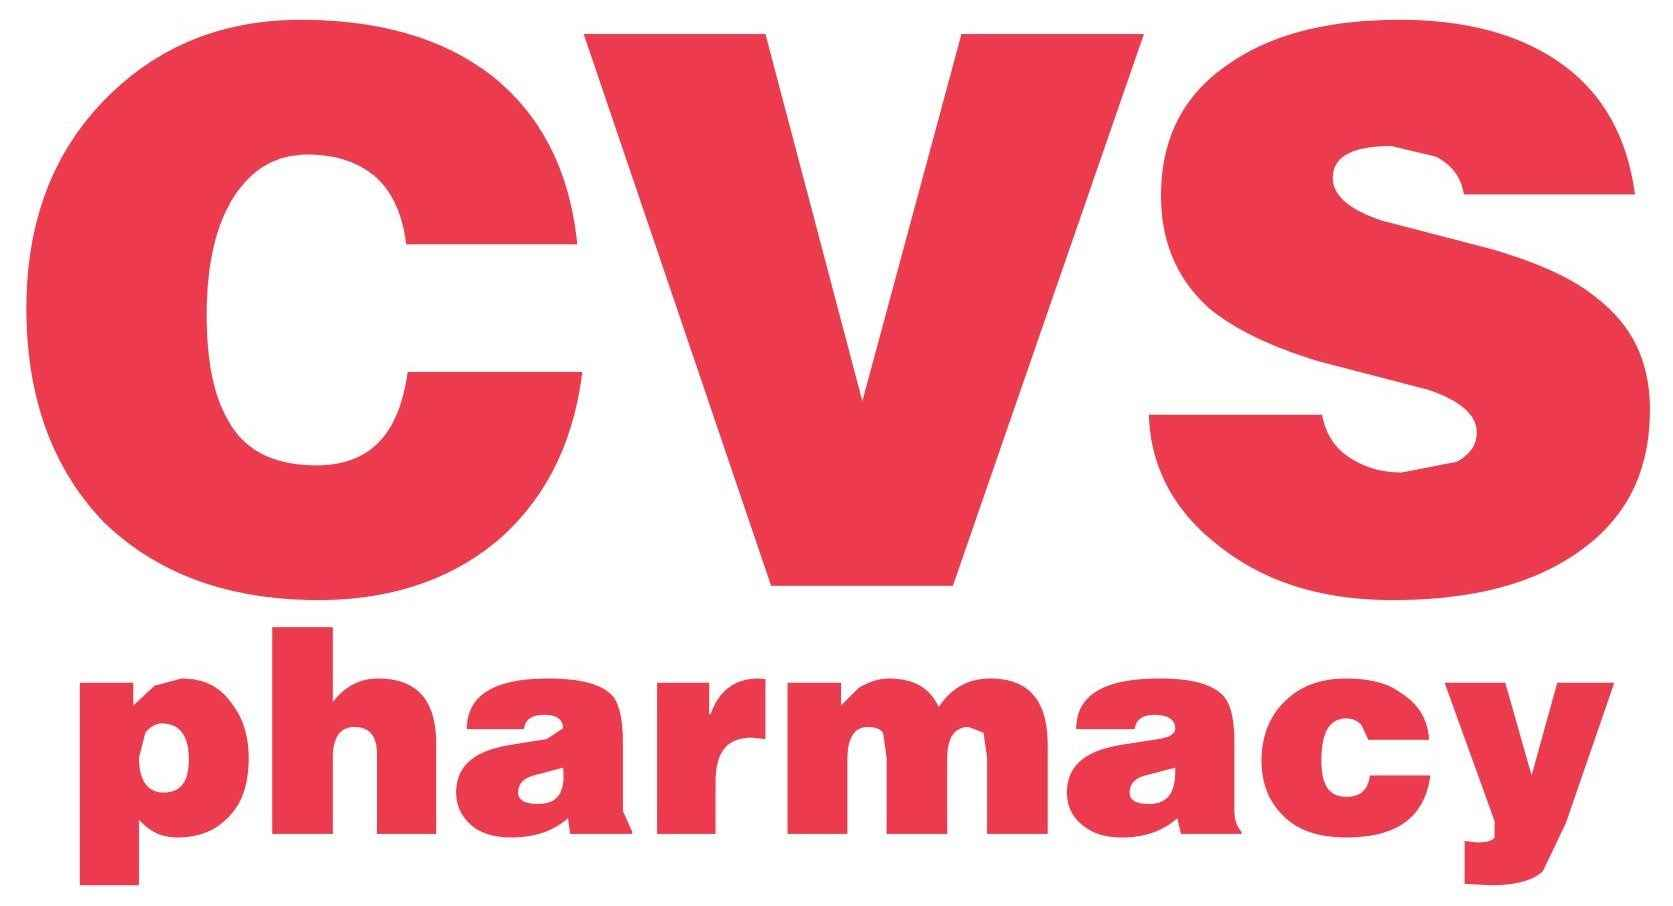 cvs pharmacy logo  pdf  vector icon template clipart free download